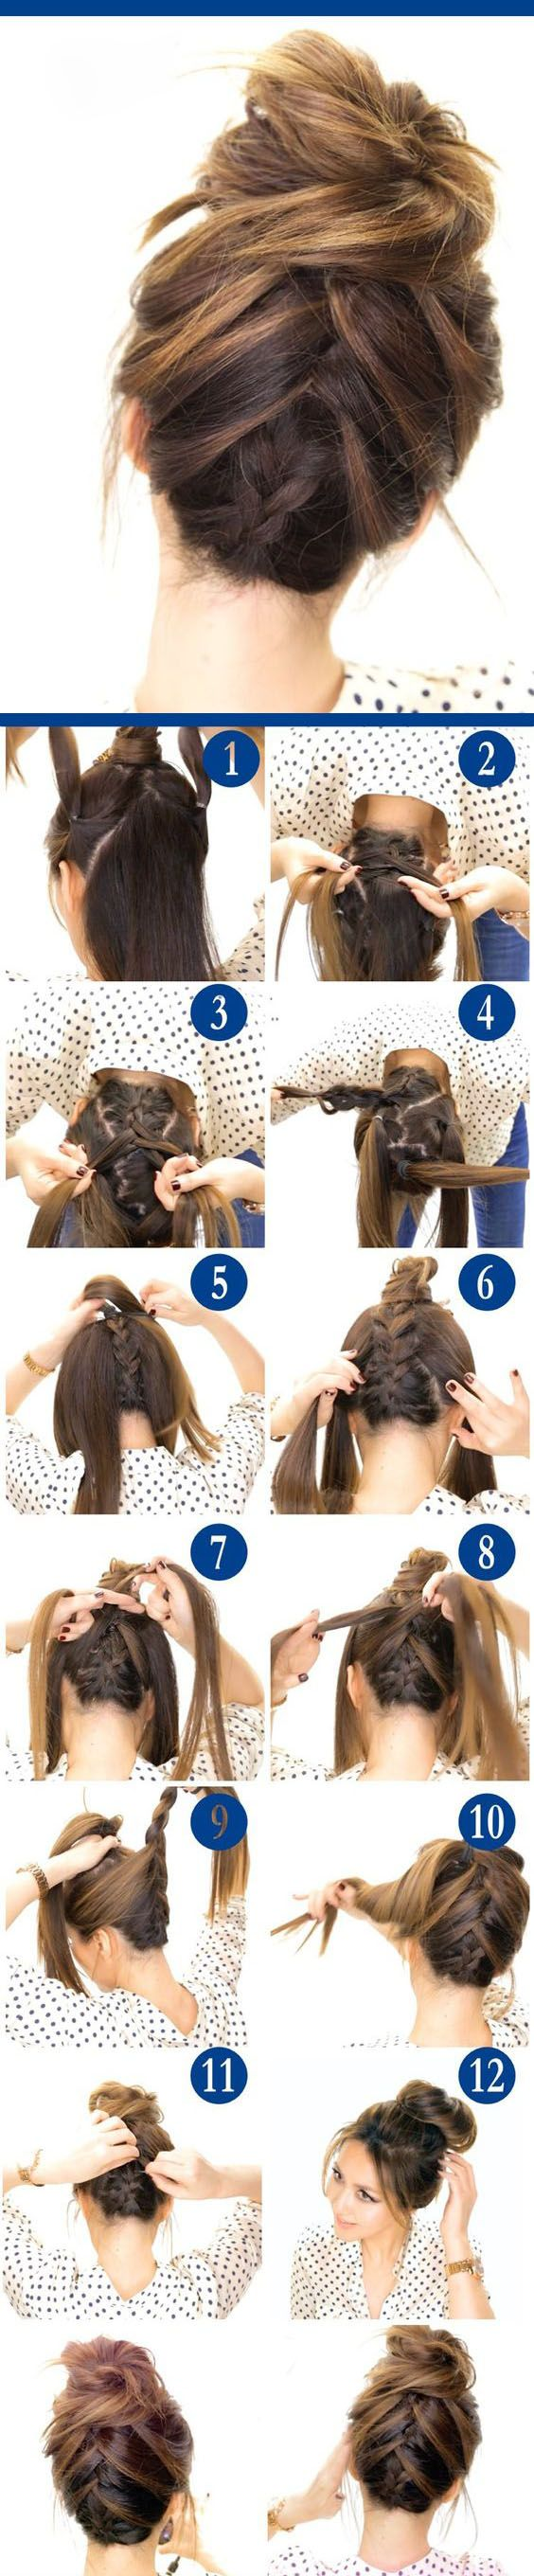 braided decoration for your messy bun